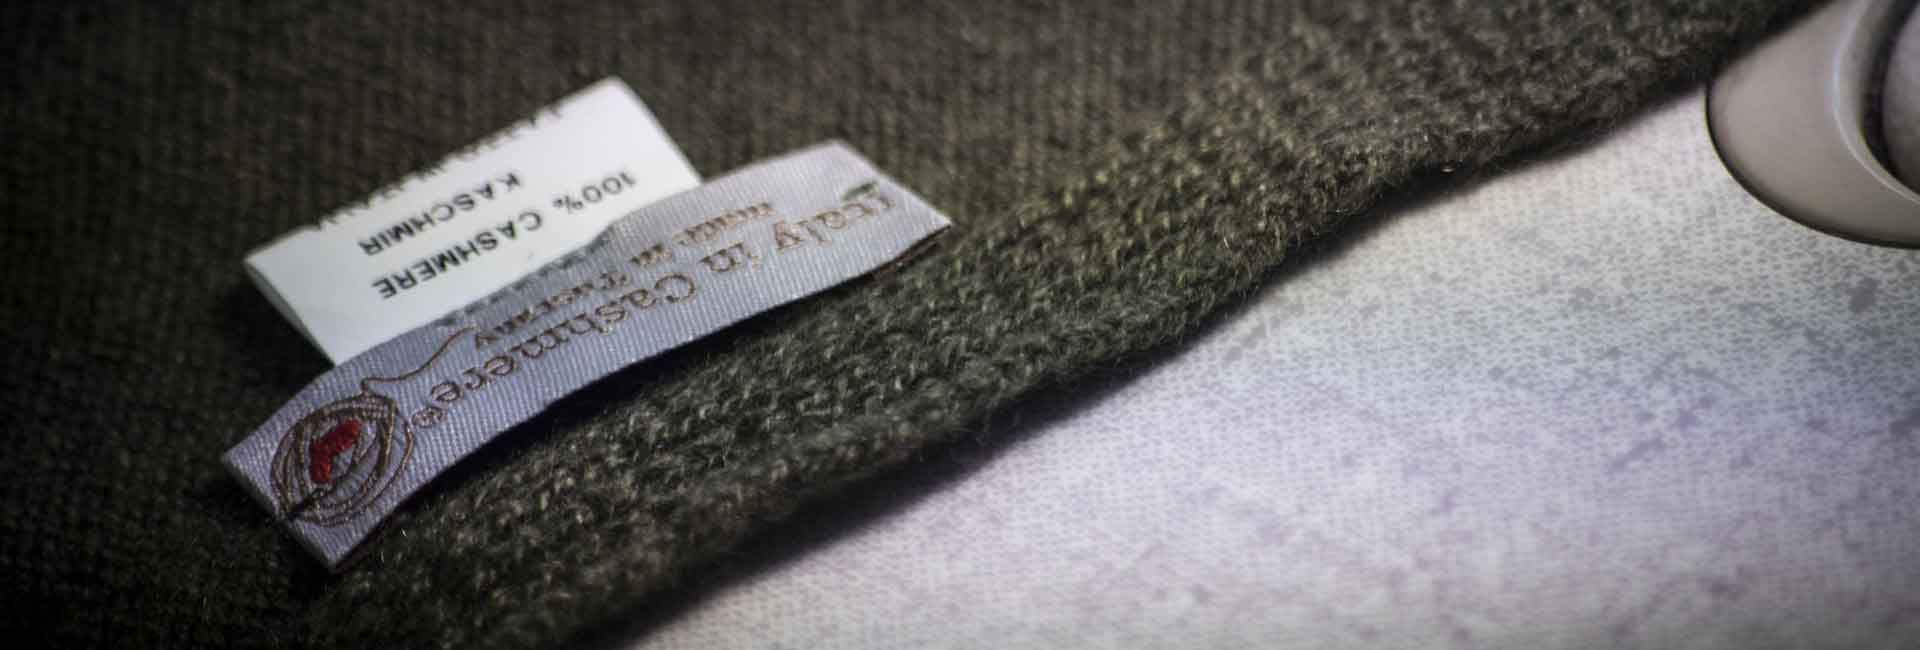 Italy in Cashmere pure cashmere wrap detail with label